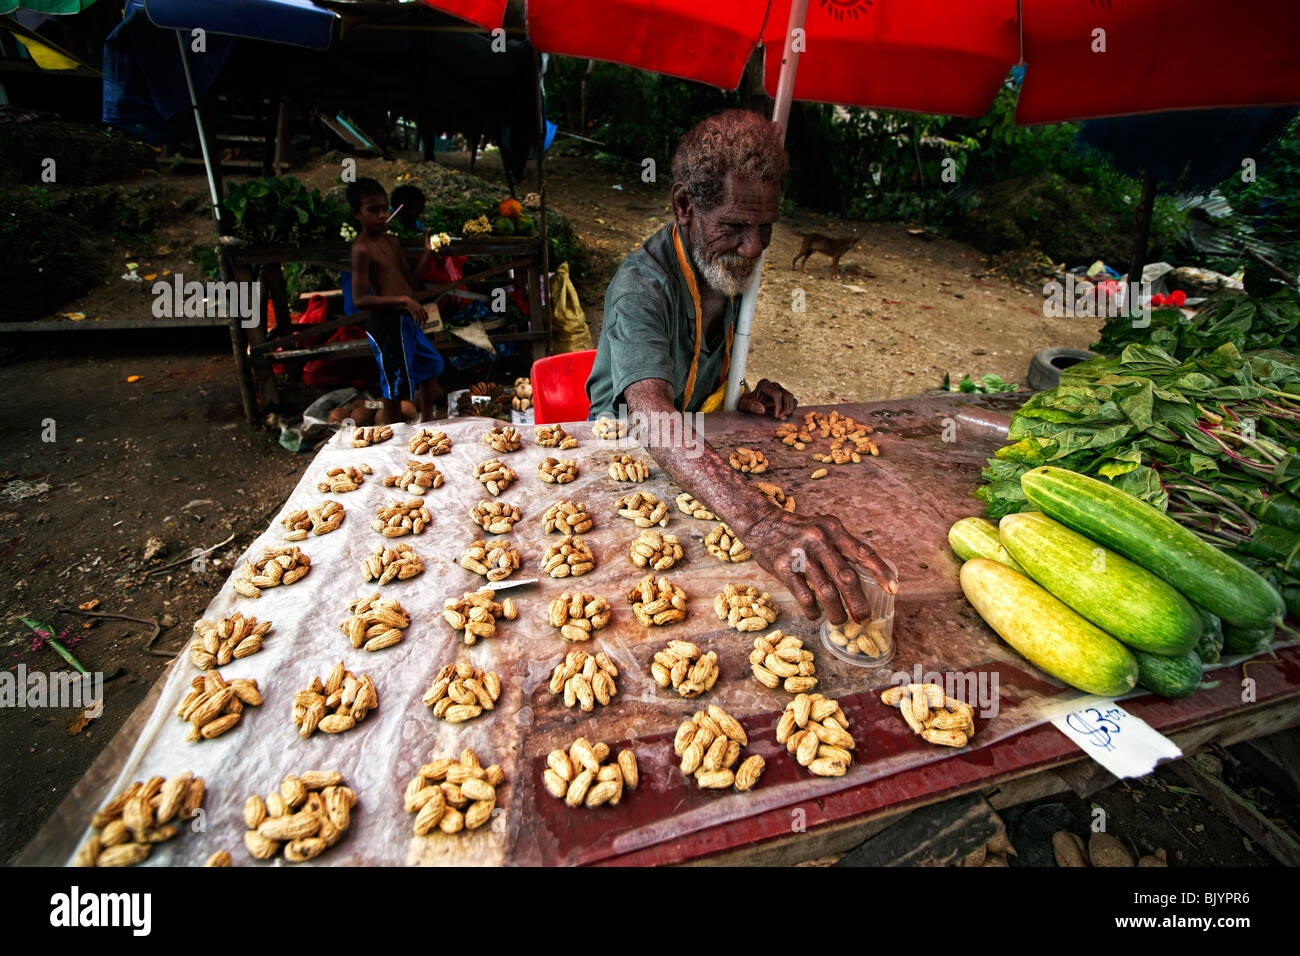 Peanut seller, roadside market, Solomon Islands - Stock Image